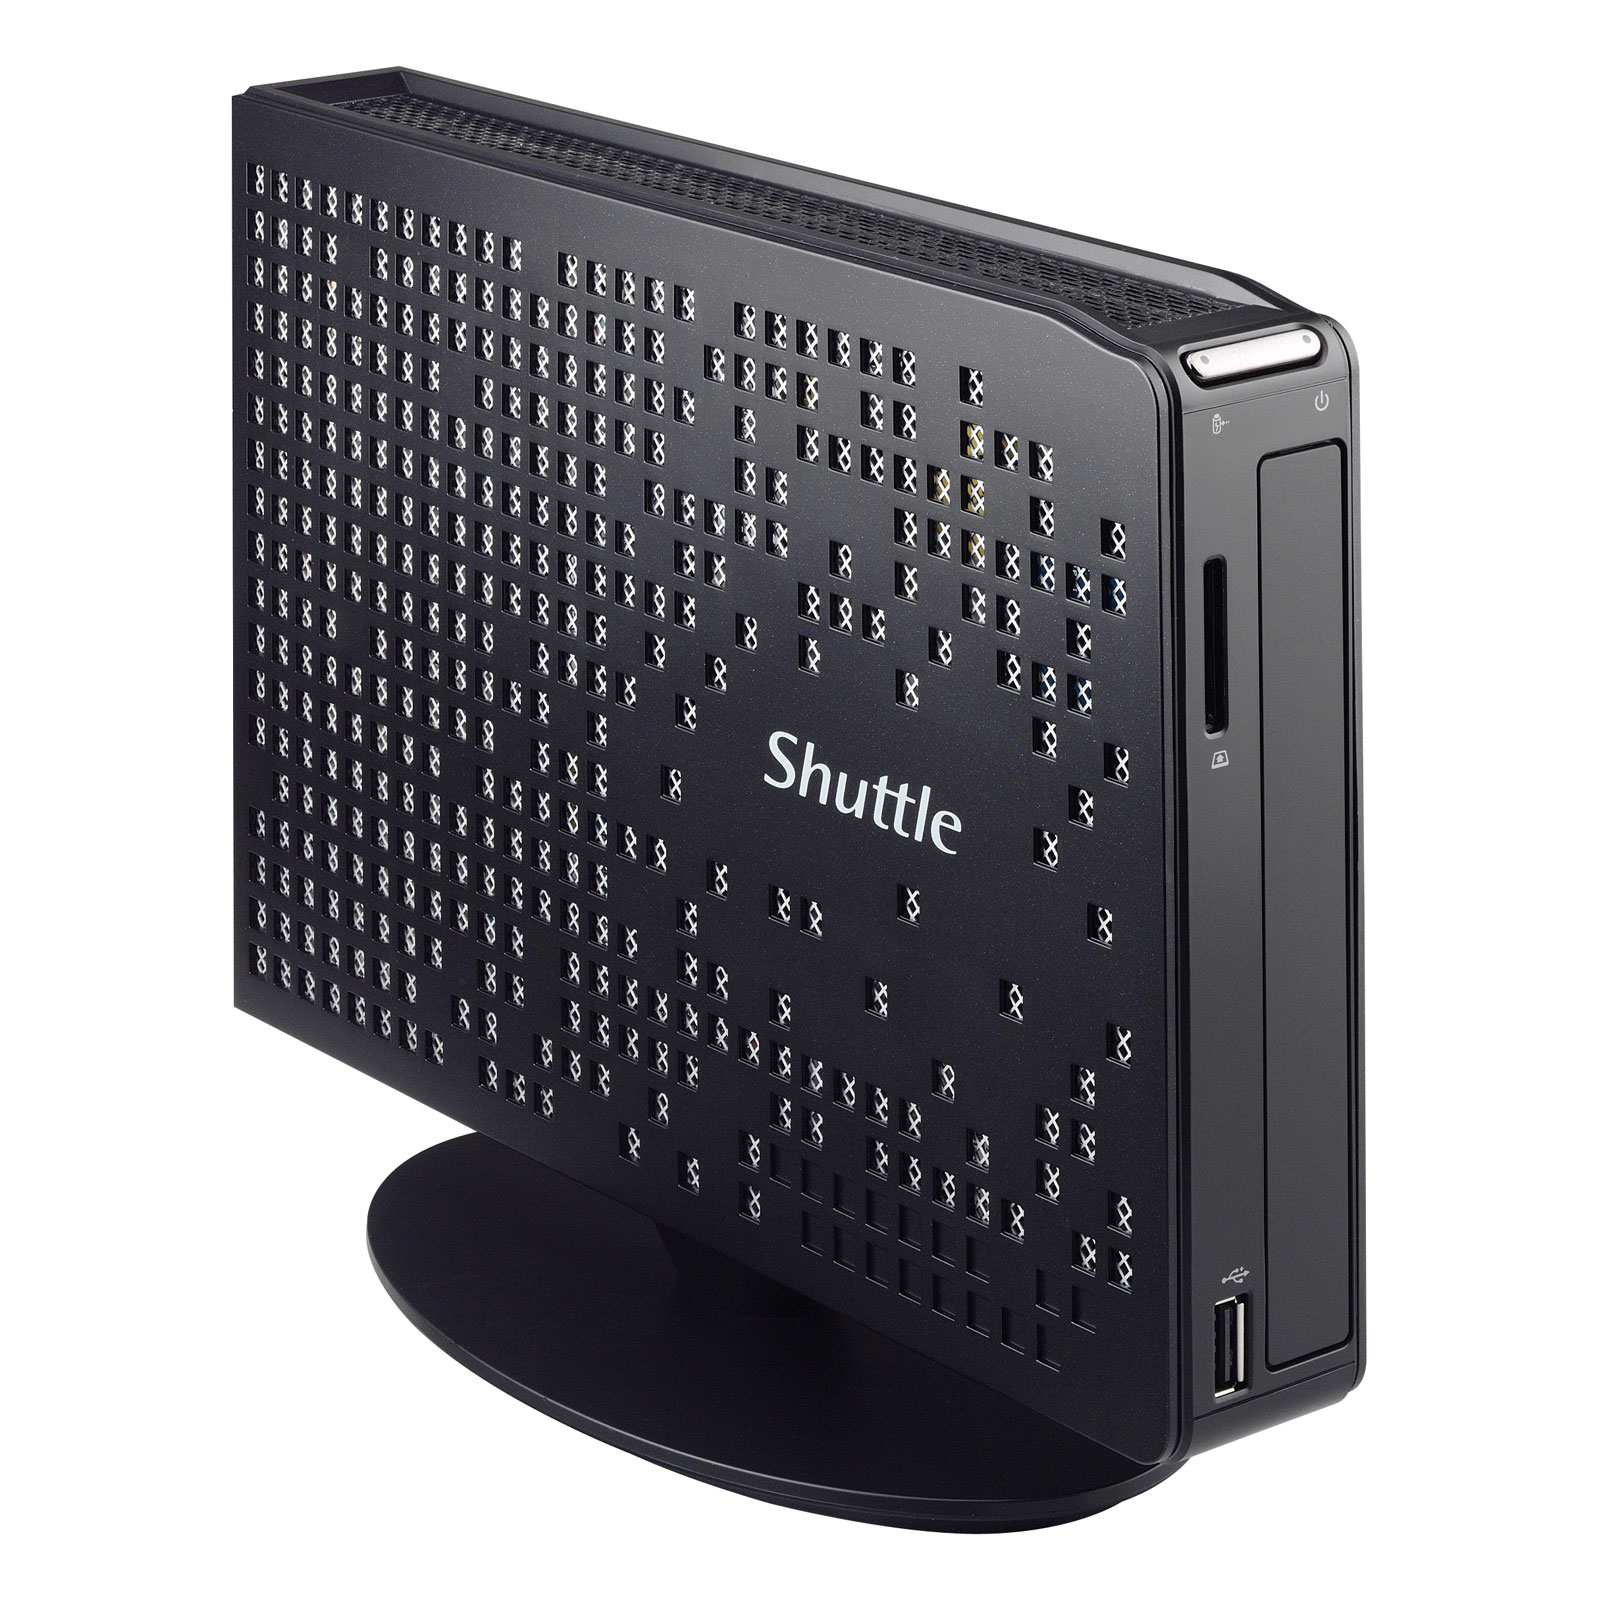 Barebone PC Shuttle XS35V4 Mini-Barebone Intel Celeron Quad Core J1900 - 1 x SO-DIMM DDR3L - SATA 3Gb/s - USB 3.0 - Wi-Fi N - Gigabit LAN (sans écran/mémoire/disque dur)